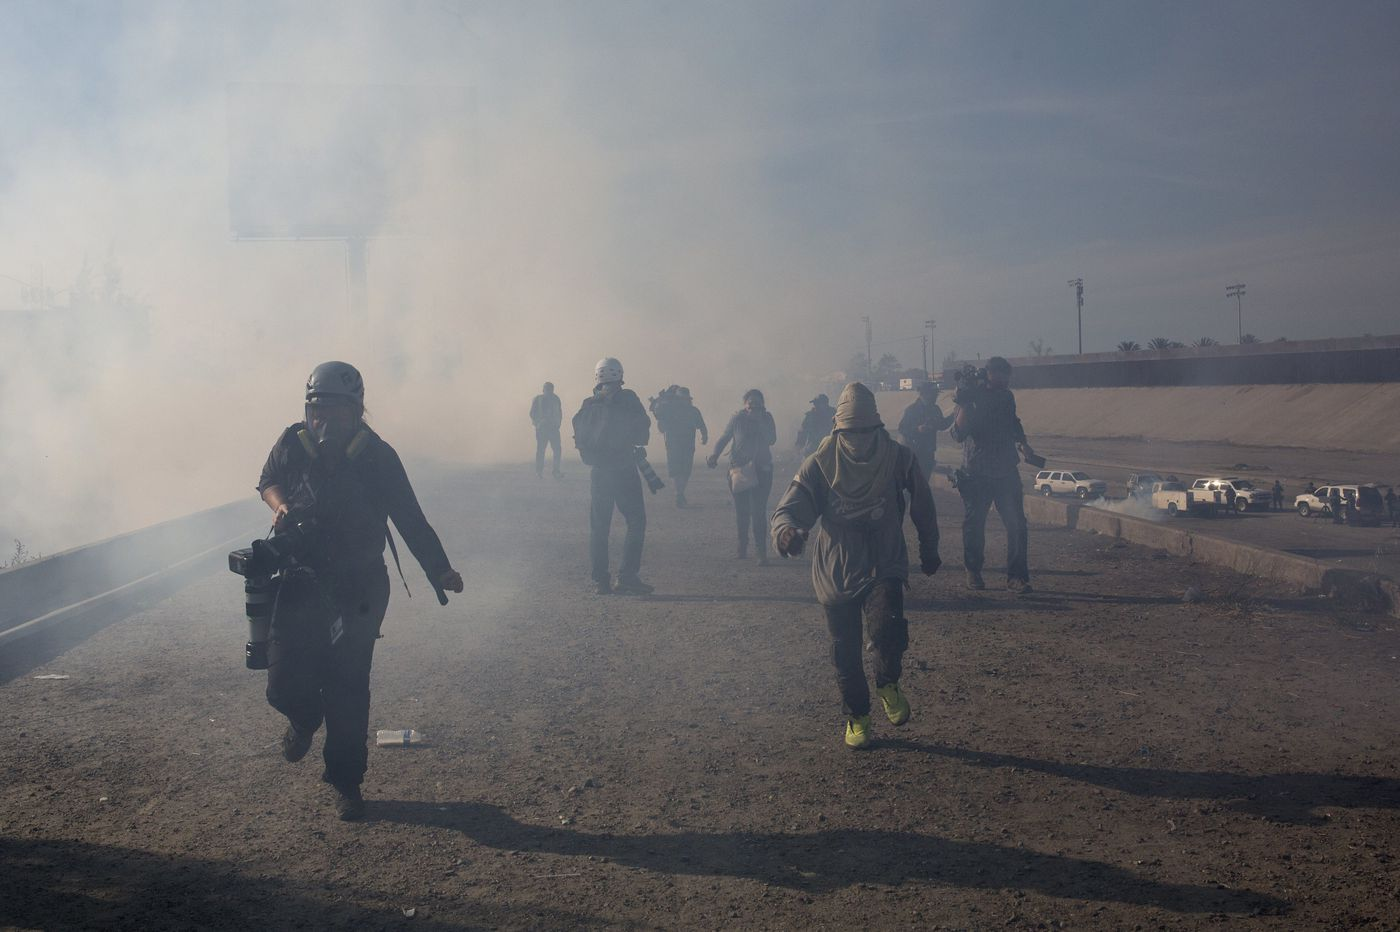 Trump backs use of 'very safe' tear gas on crowd of migrants